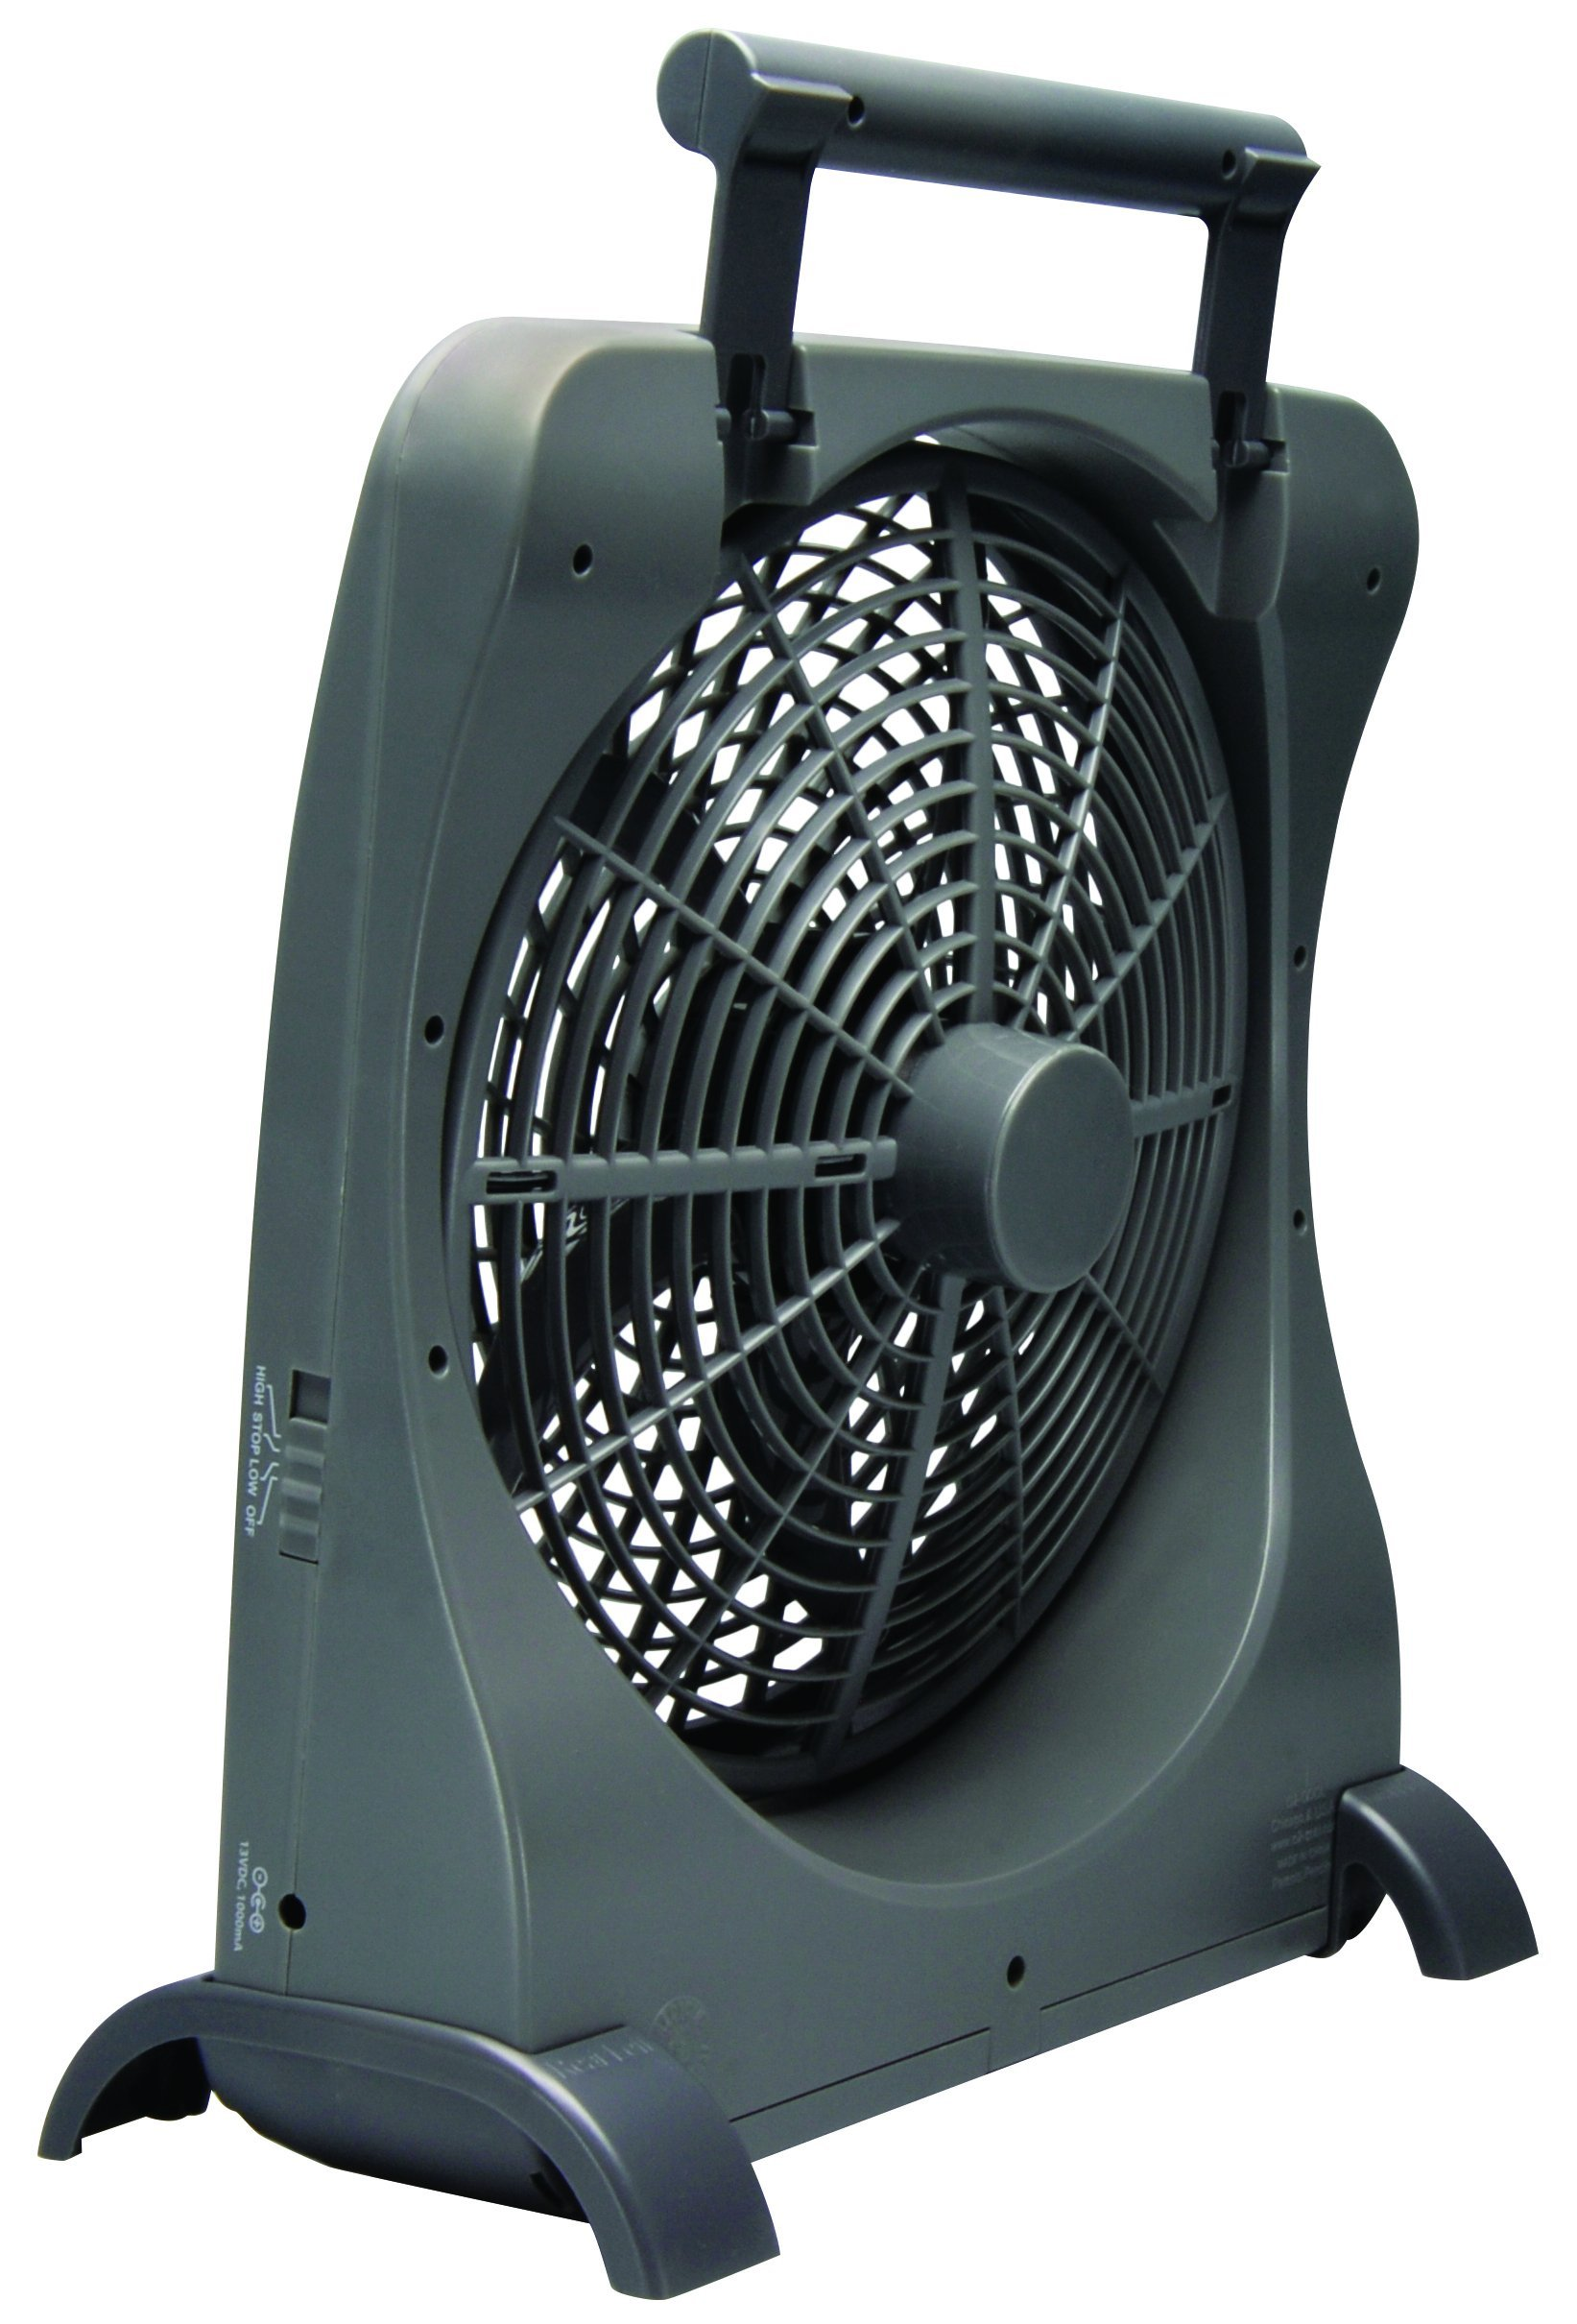 O2COOL 10-Inch Portable Smart Power Fan with AC Adapter & USB Charging Port, 8-D Battery Fan, Cell Phone Charging Fan, 10-Inch Compact Portable Battery Fan, Smart Power, Pivoting Fan Head by O2COOL (Image #2)